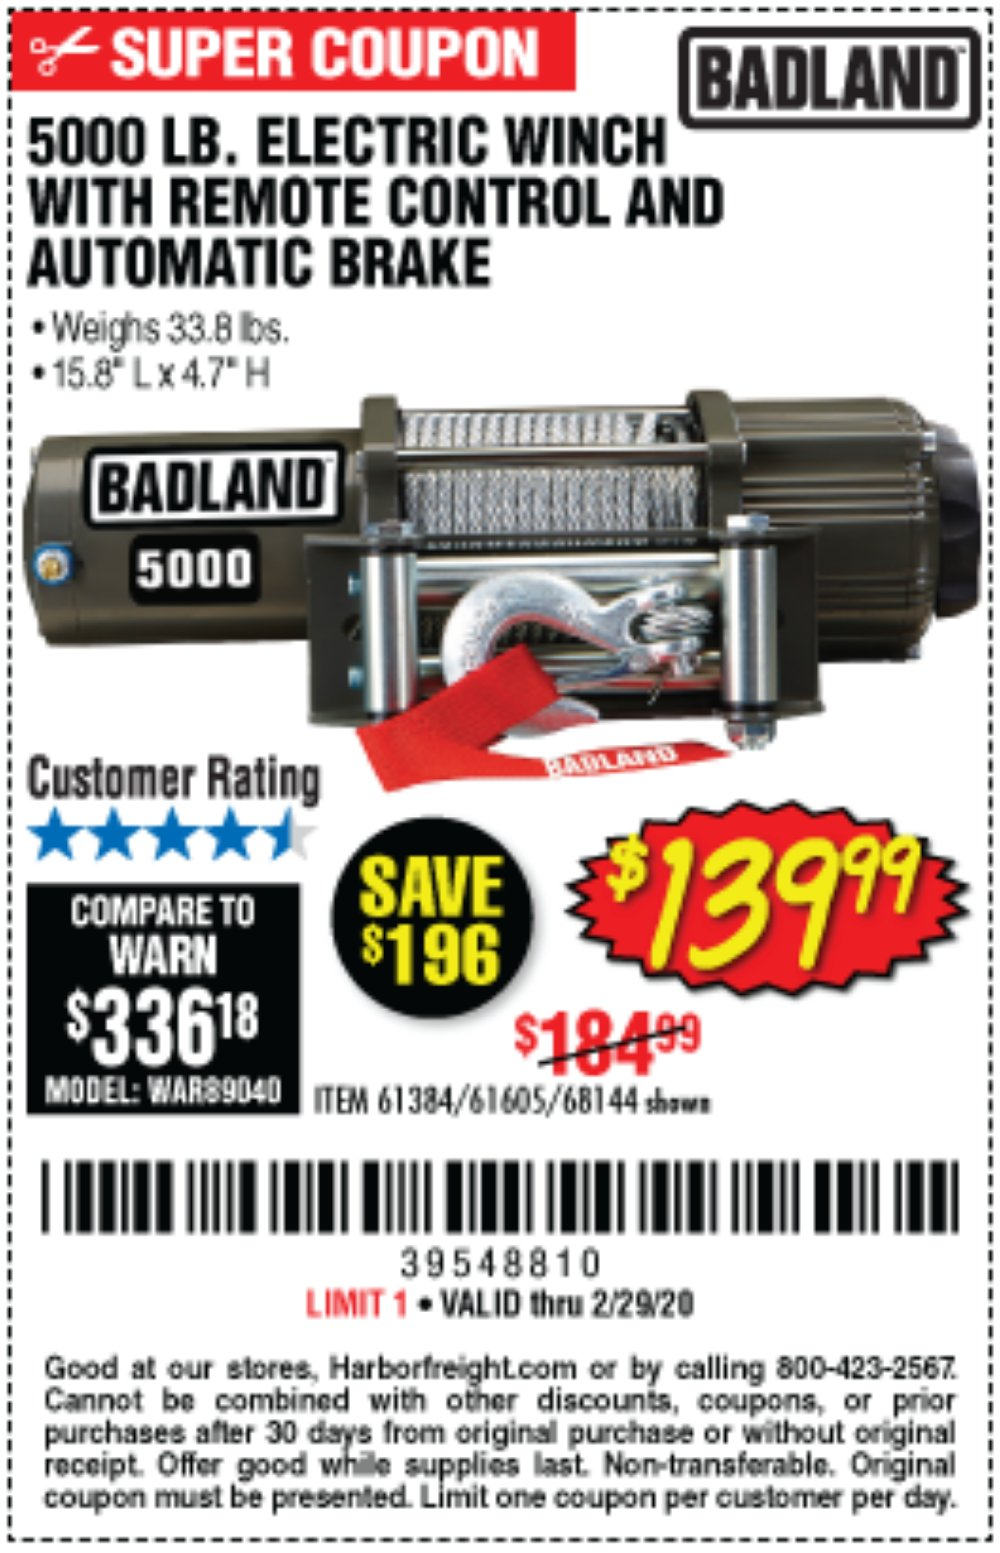 Harbor Freight Coupon, HF Coupons - 5000 Lb. Electric Winch With Remote Control And Automatic Brake